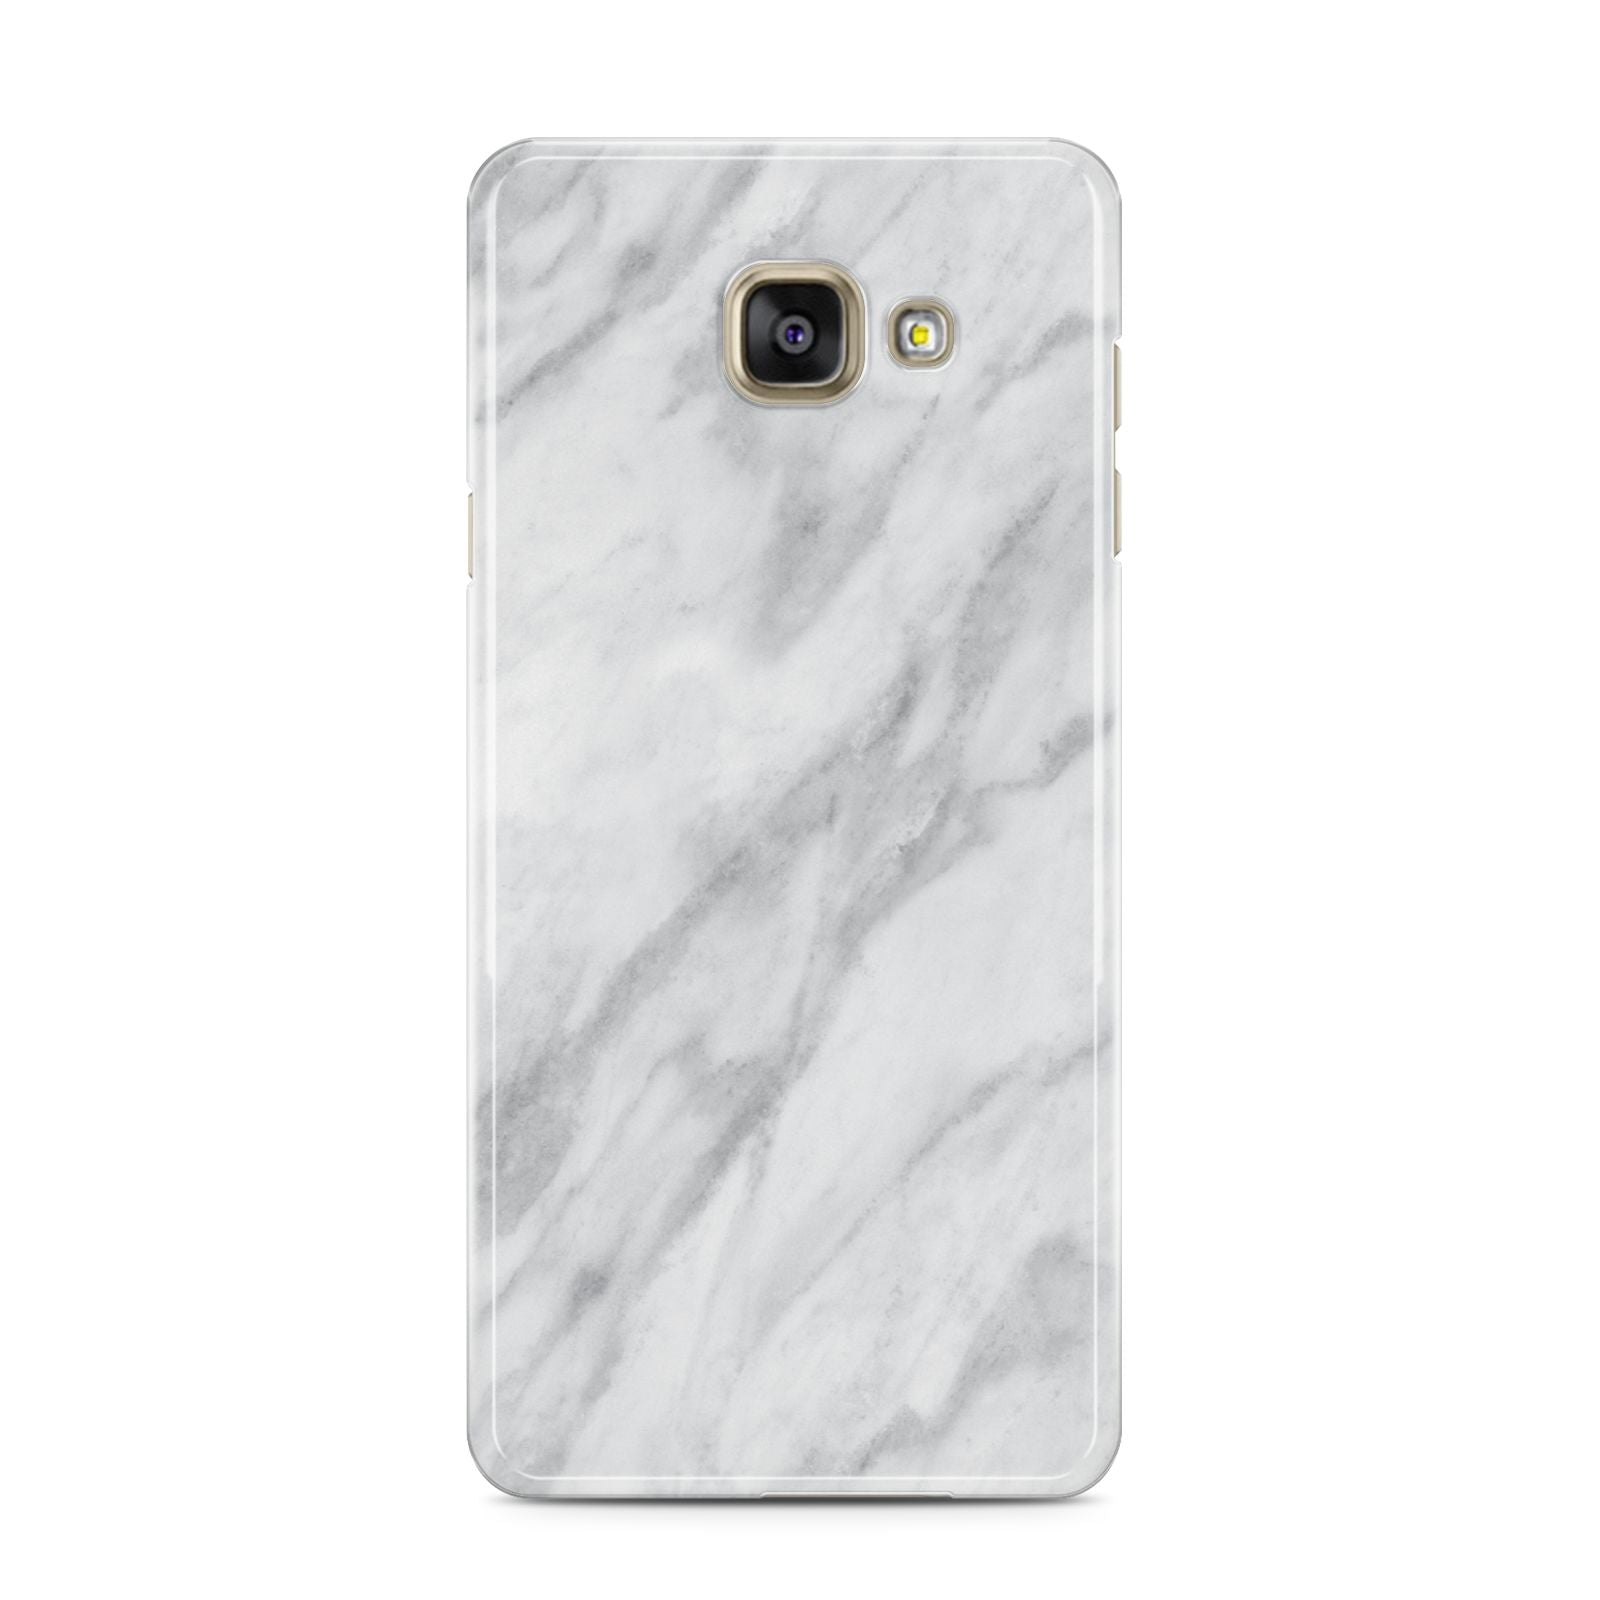 Faux Marble Effect Italian Samsung Galaxy A3 2016 Case on gold phone